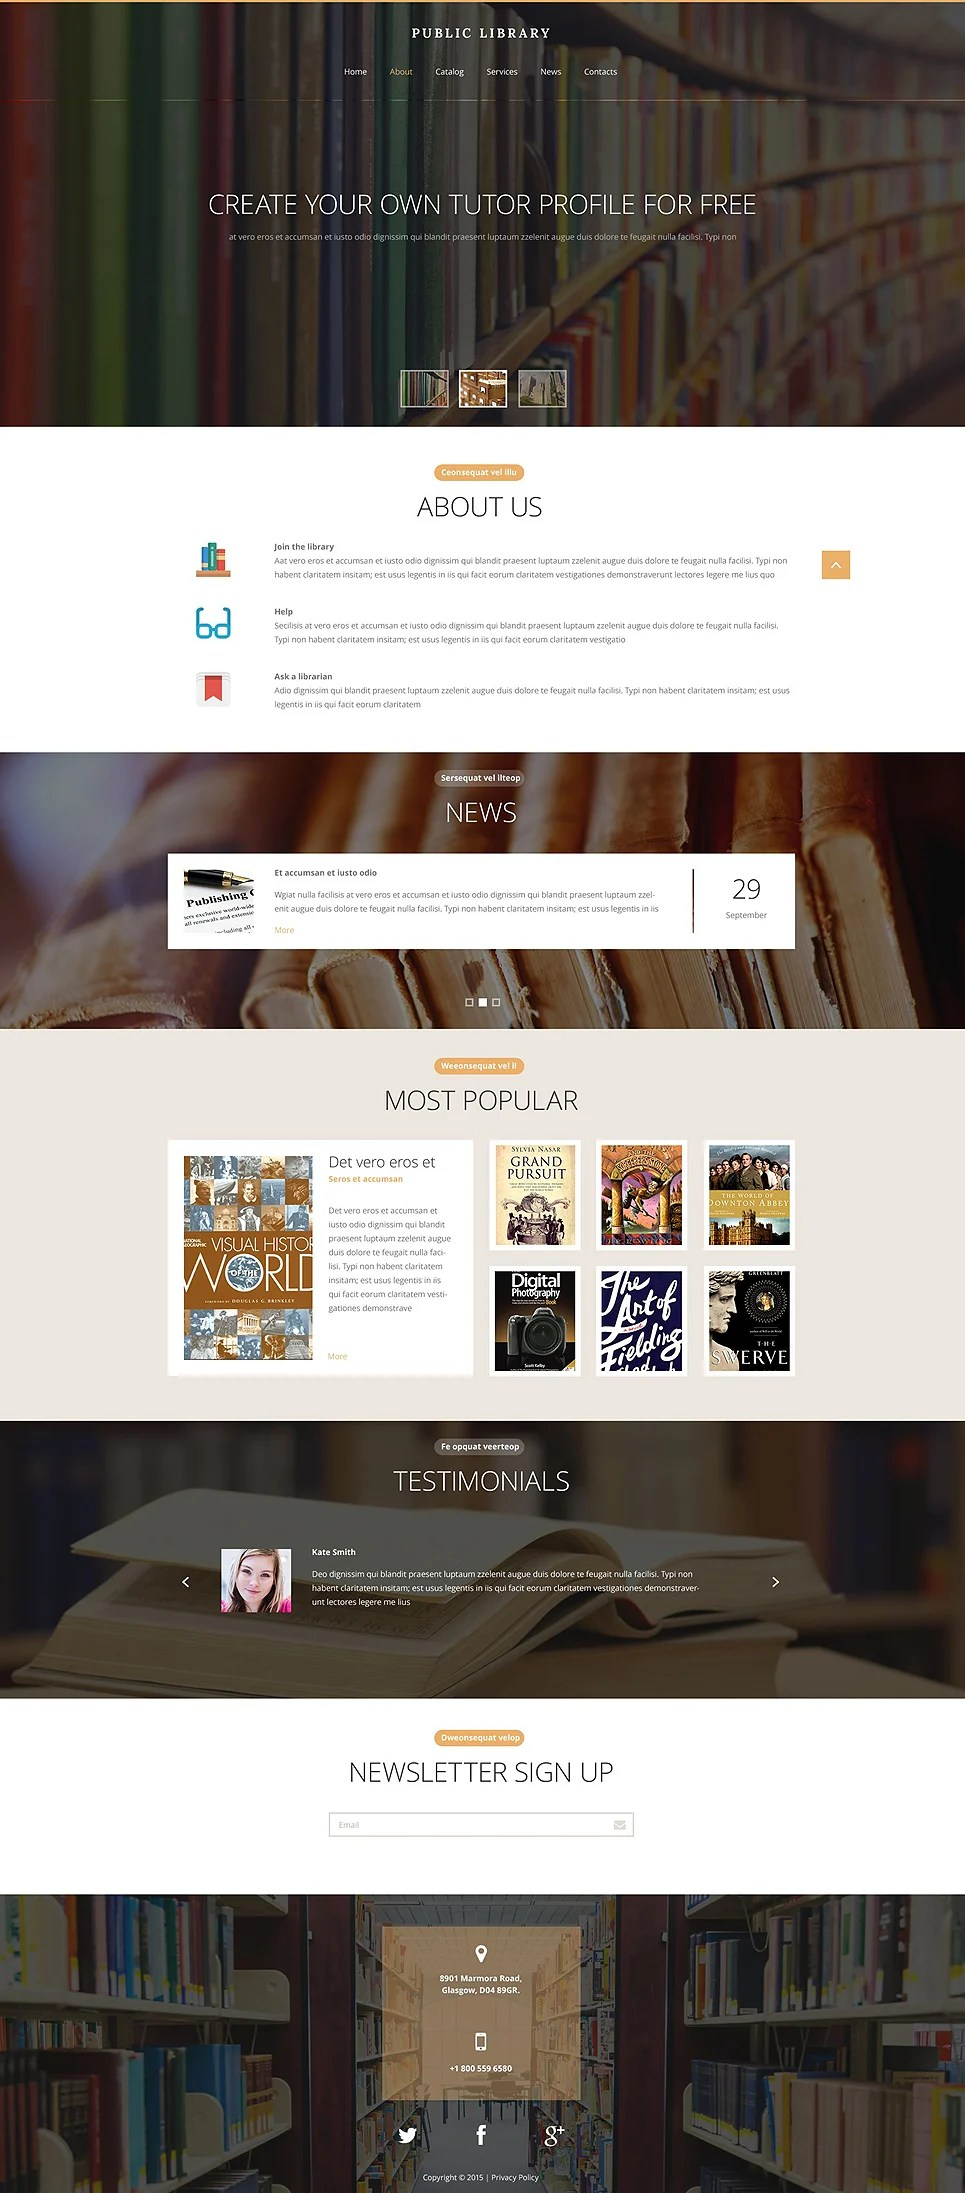 Public Library Website Template